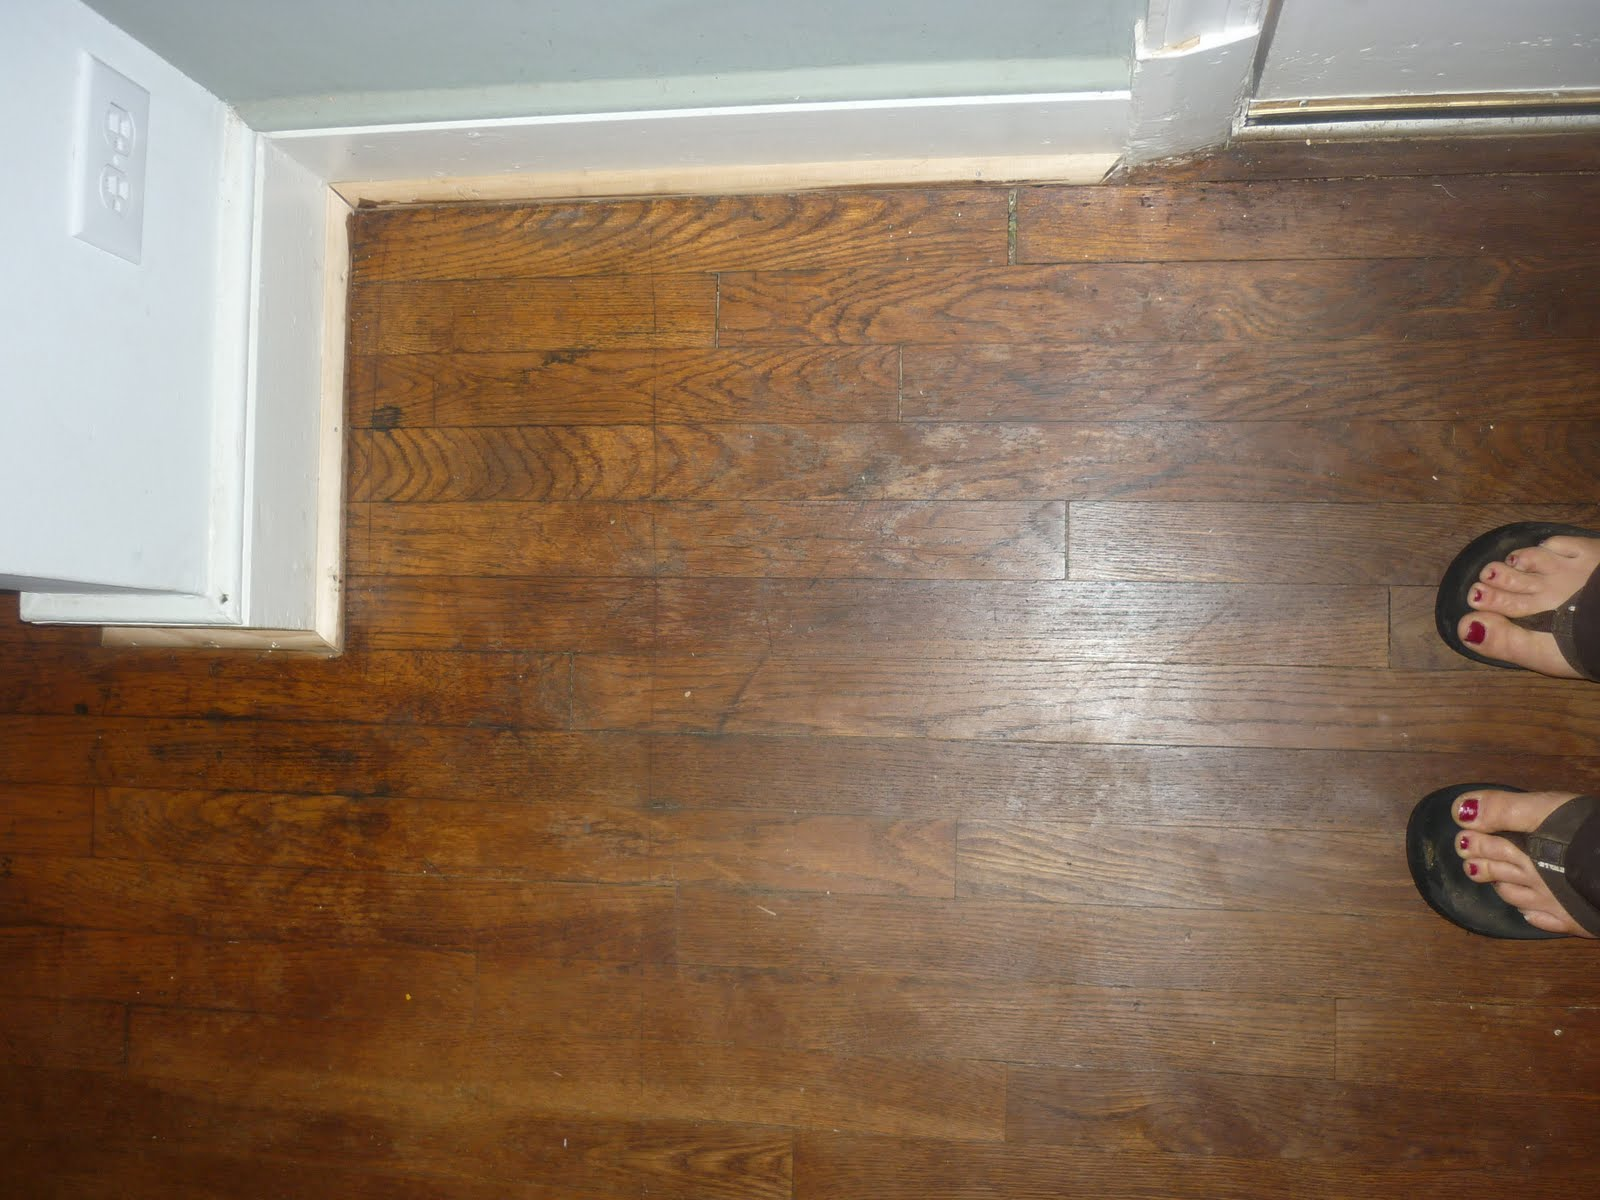 Dried Figs And Wooden Spools Before And After The Floors